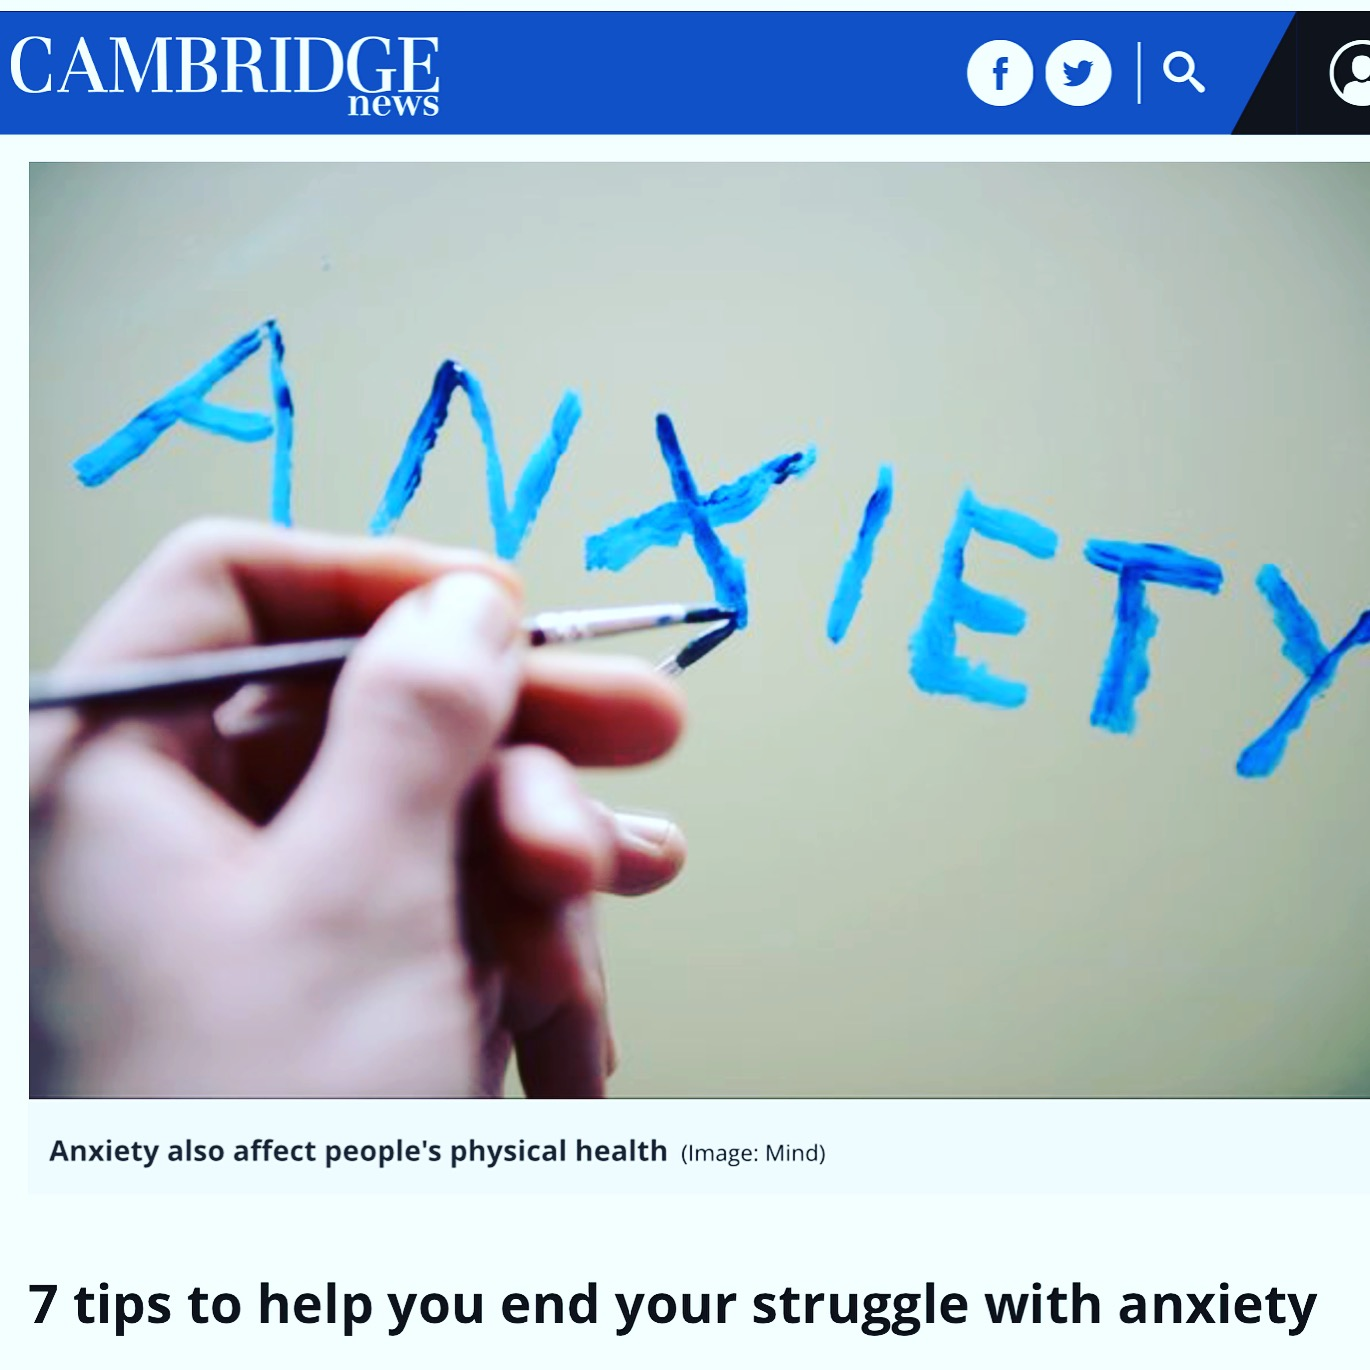 world mental health day anxiety help cambridge news